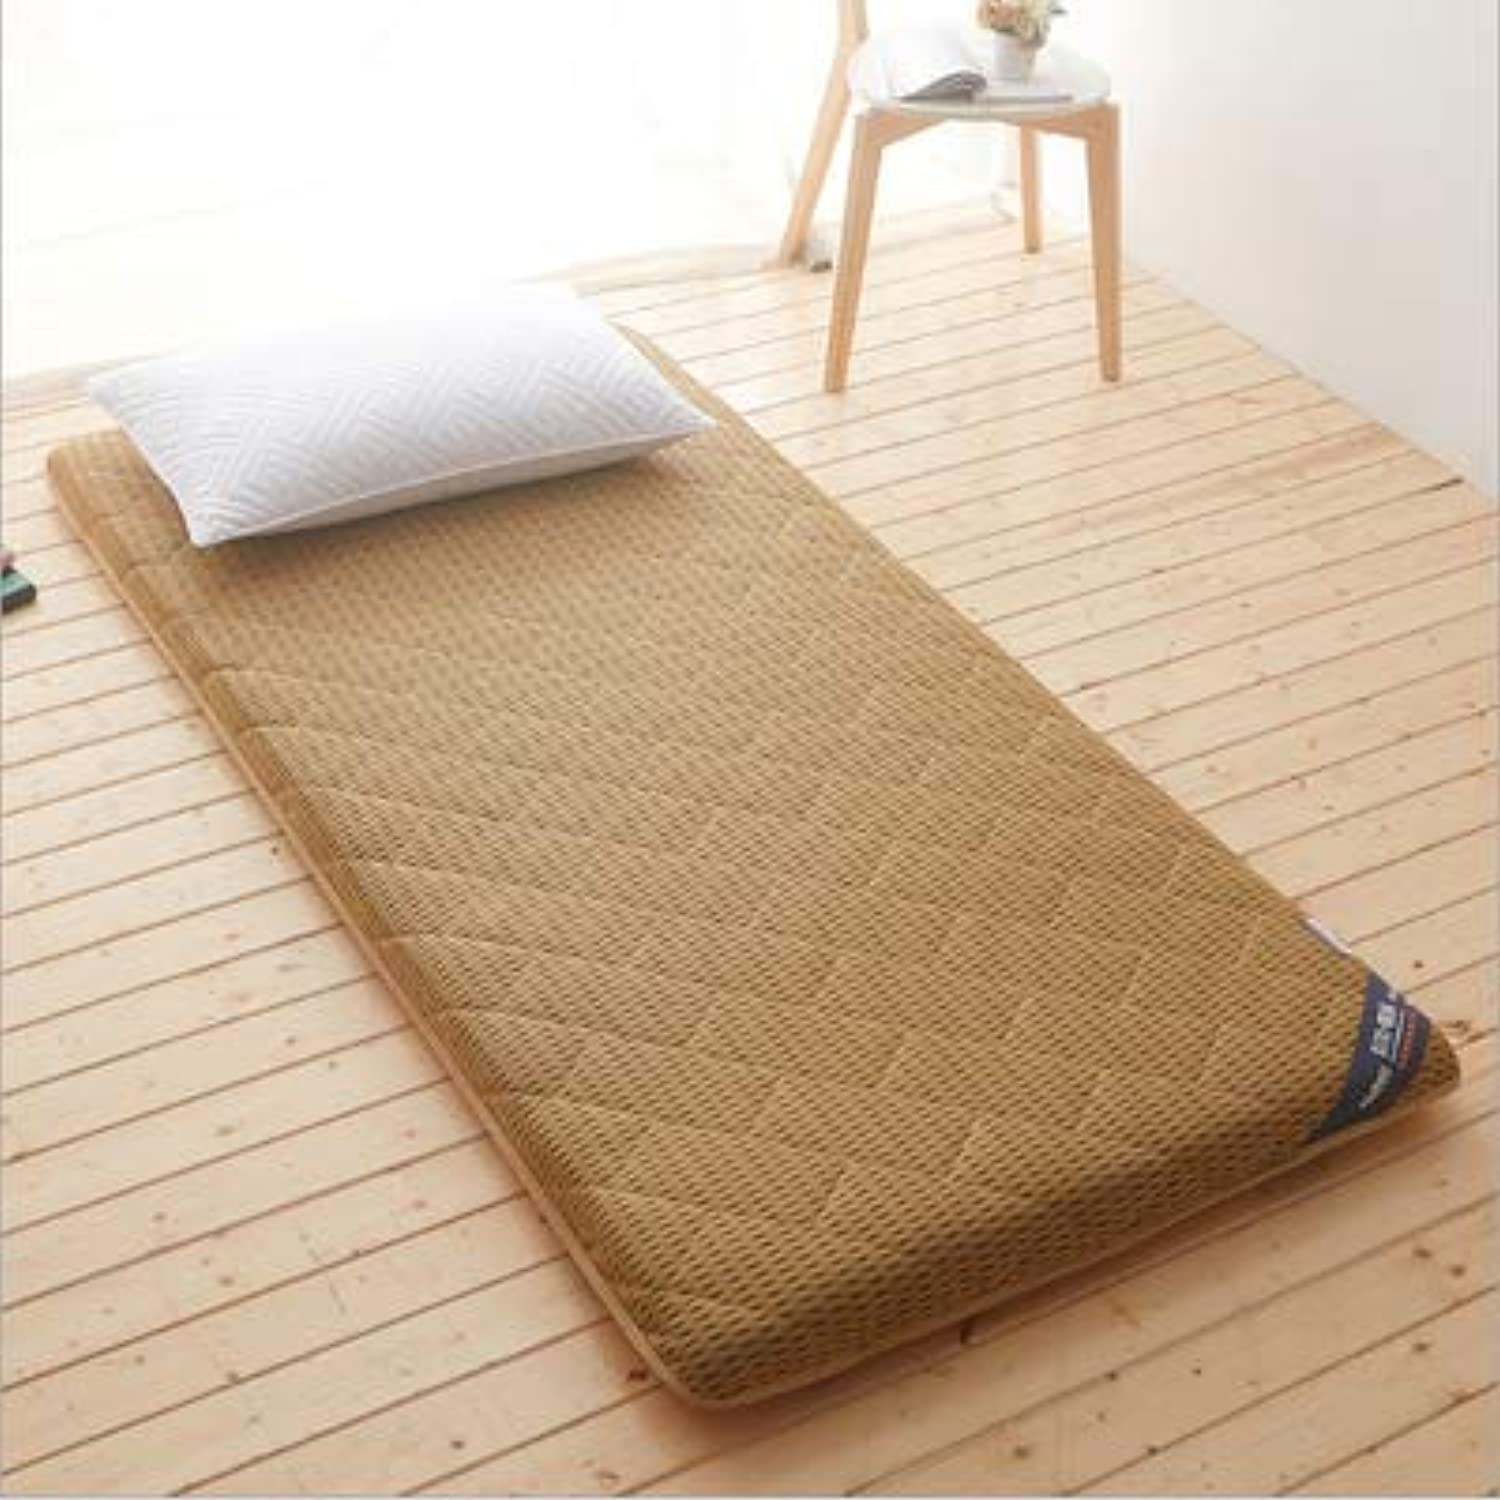 Breathable Mattress Collapsible, Softness Comfortable Futon Single Sleeping Pad for Bedroom School Dormitory-d 100x190x6.5cm(39x75x3inch)